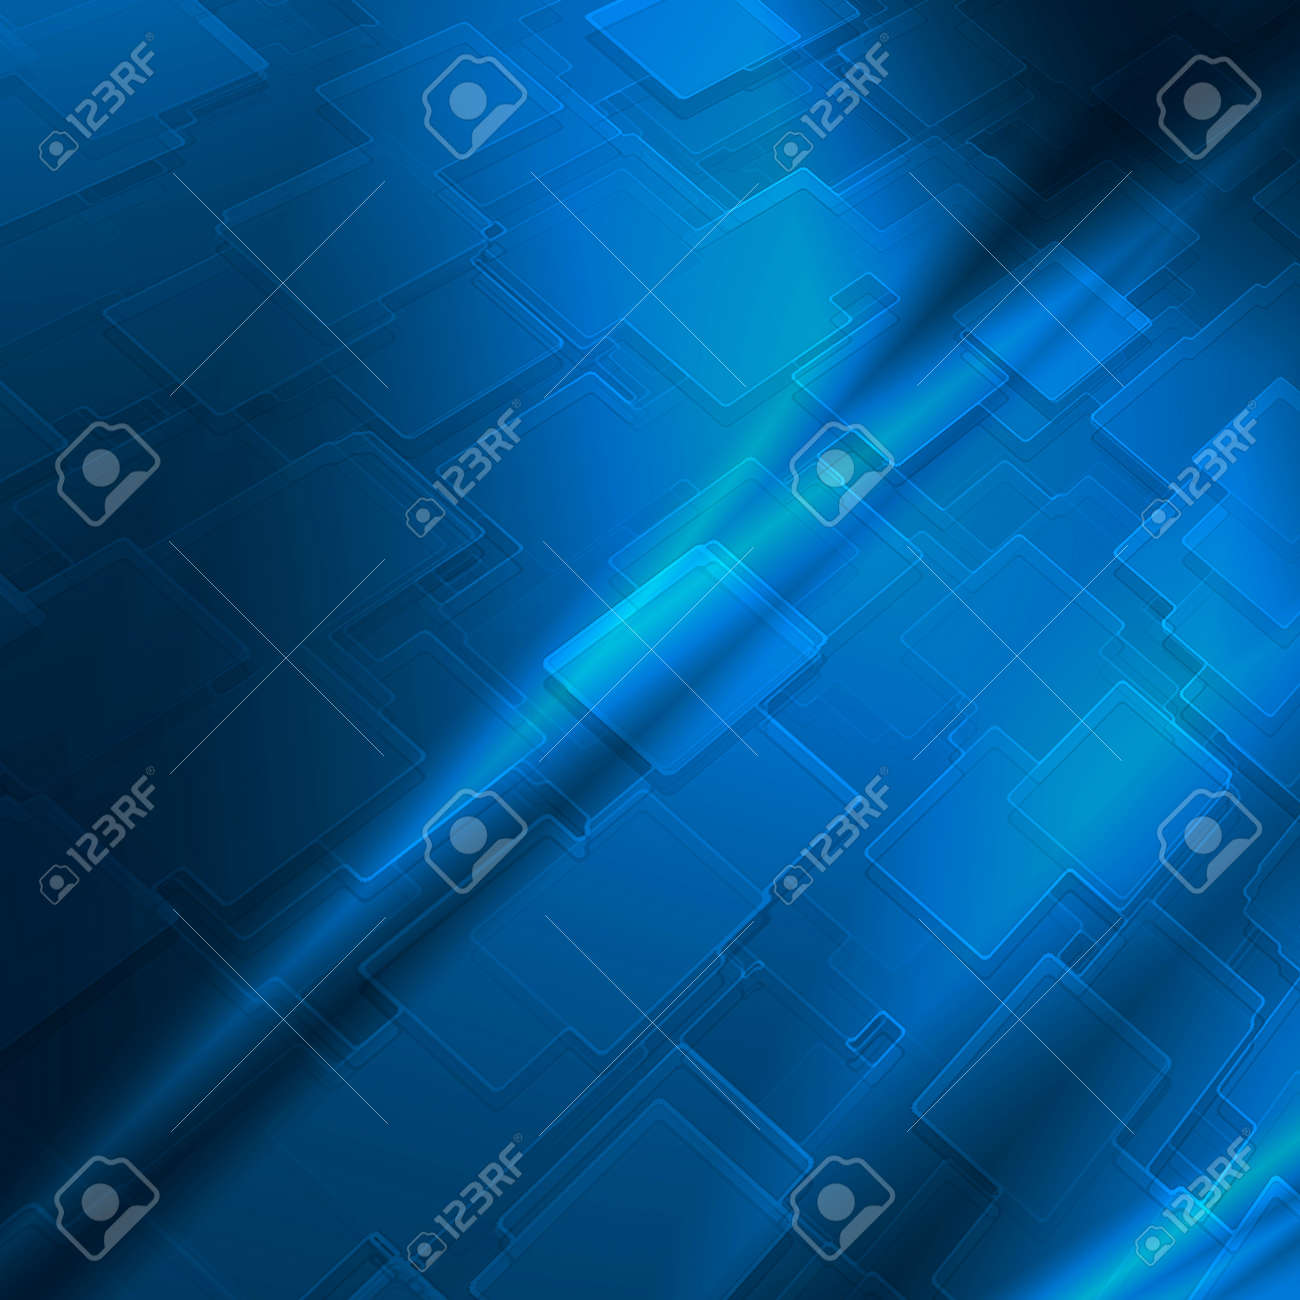 blue abstract background with cube pattern and vignette to high tech advertising or design Stock Photo - 16520149